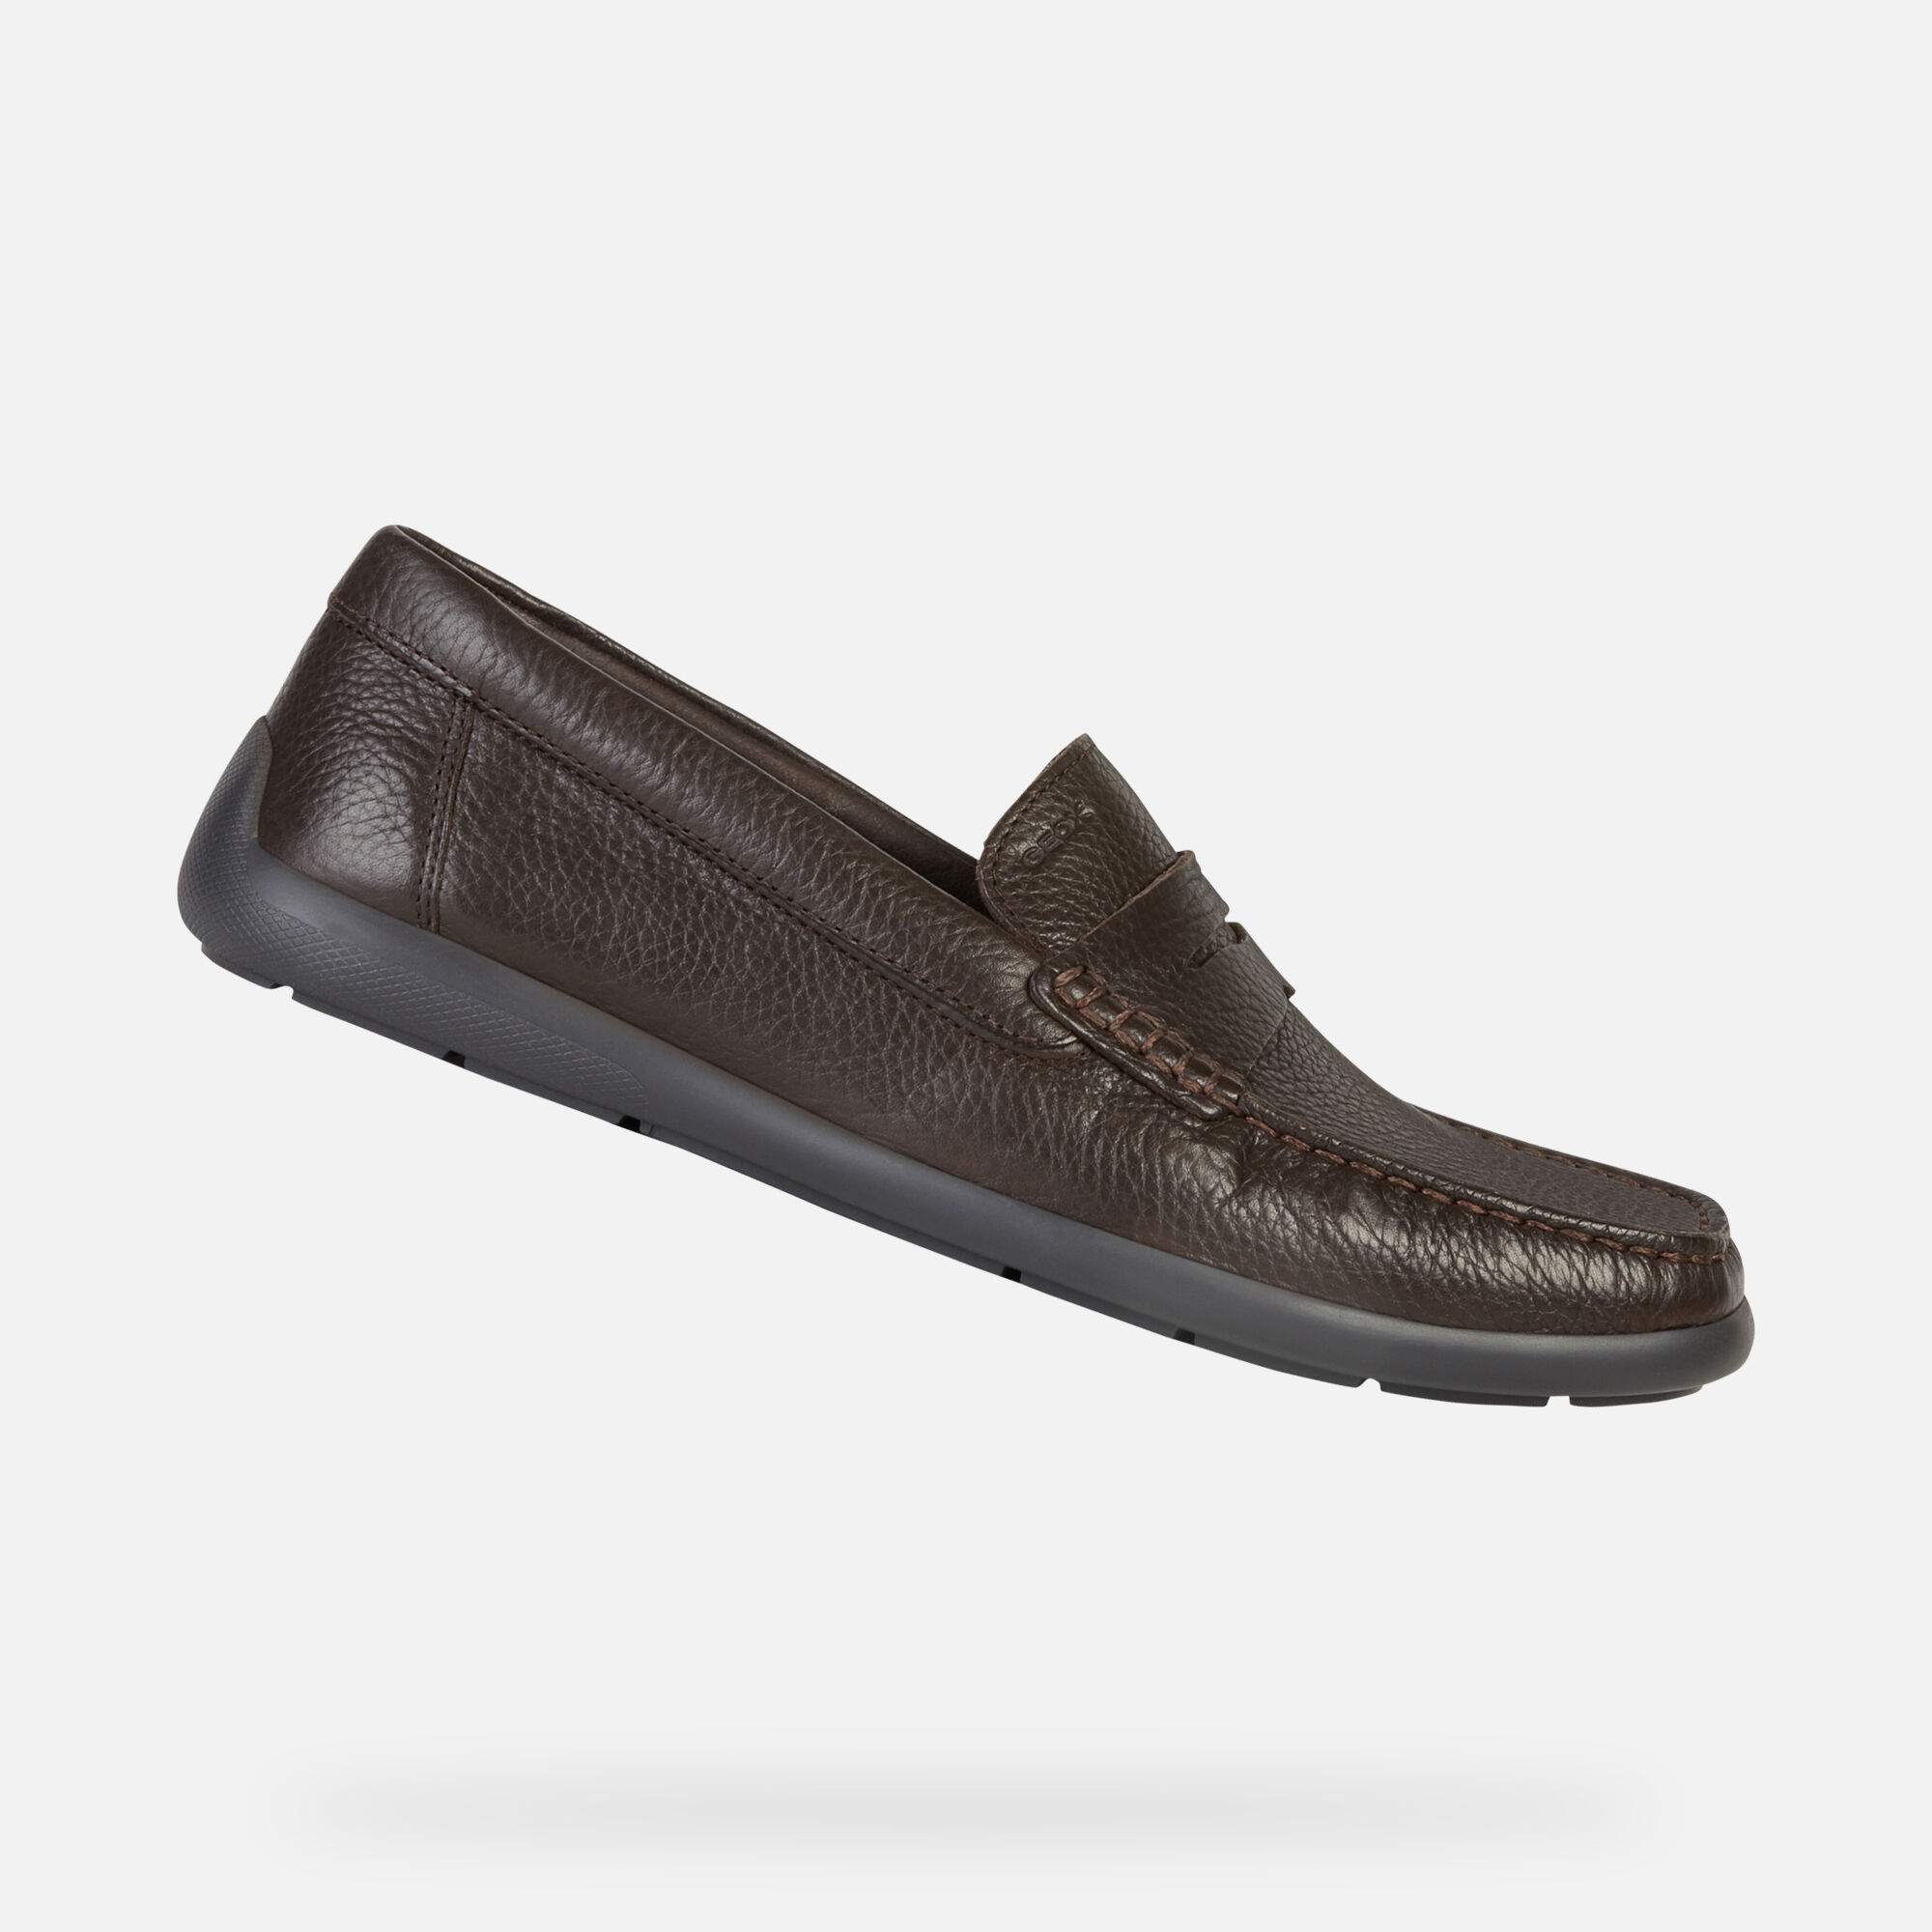 geox catalogo autunno inverno 16, Uomo Slip on Geox